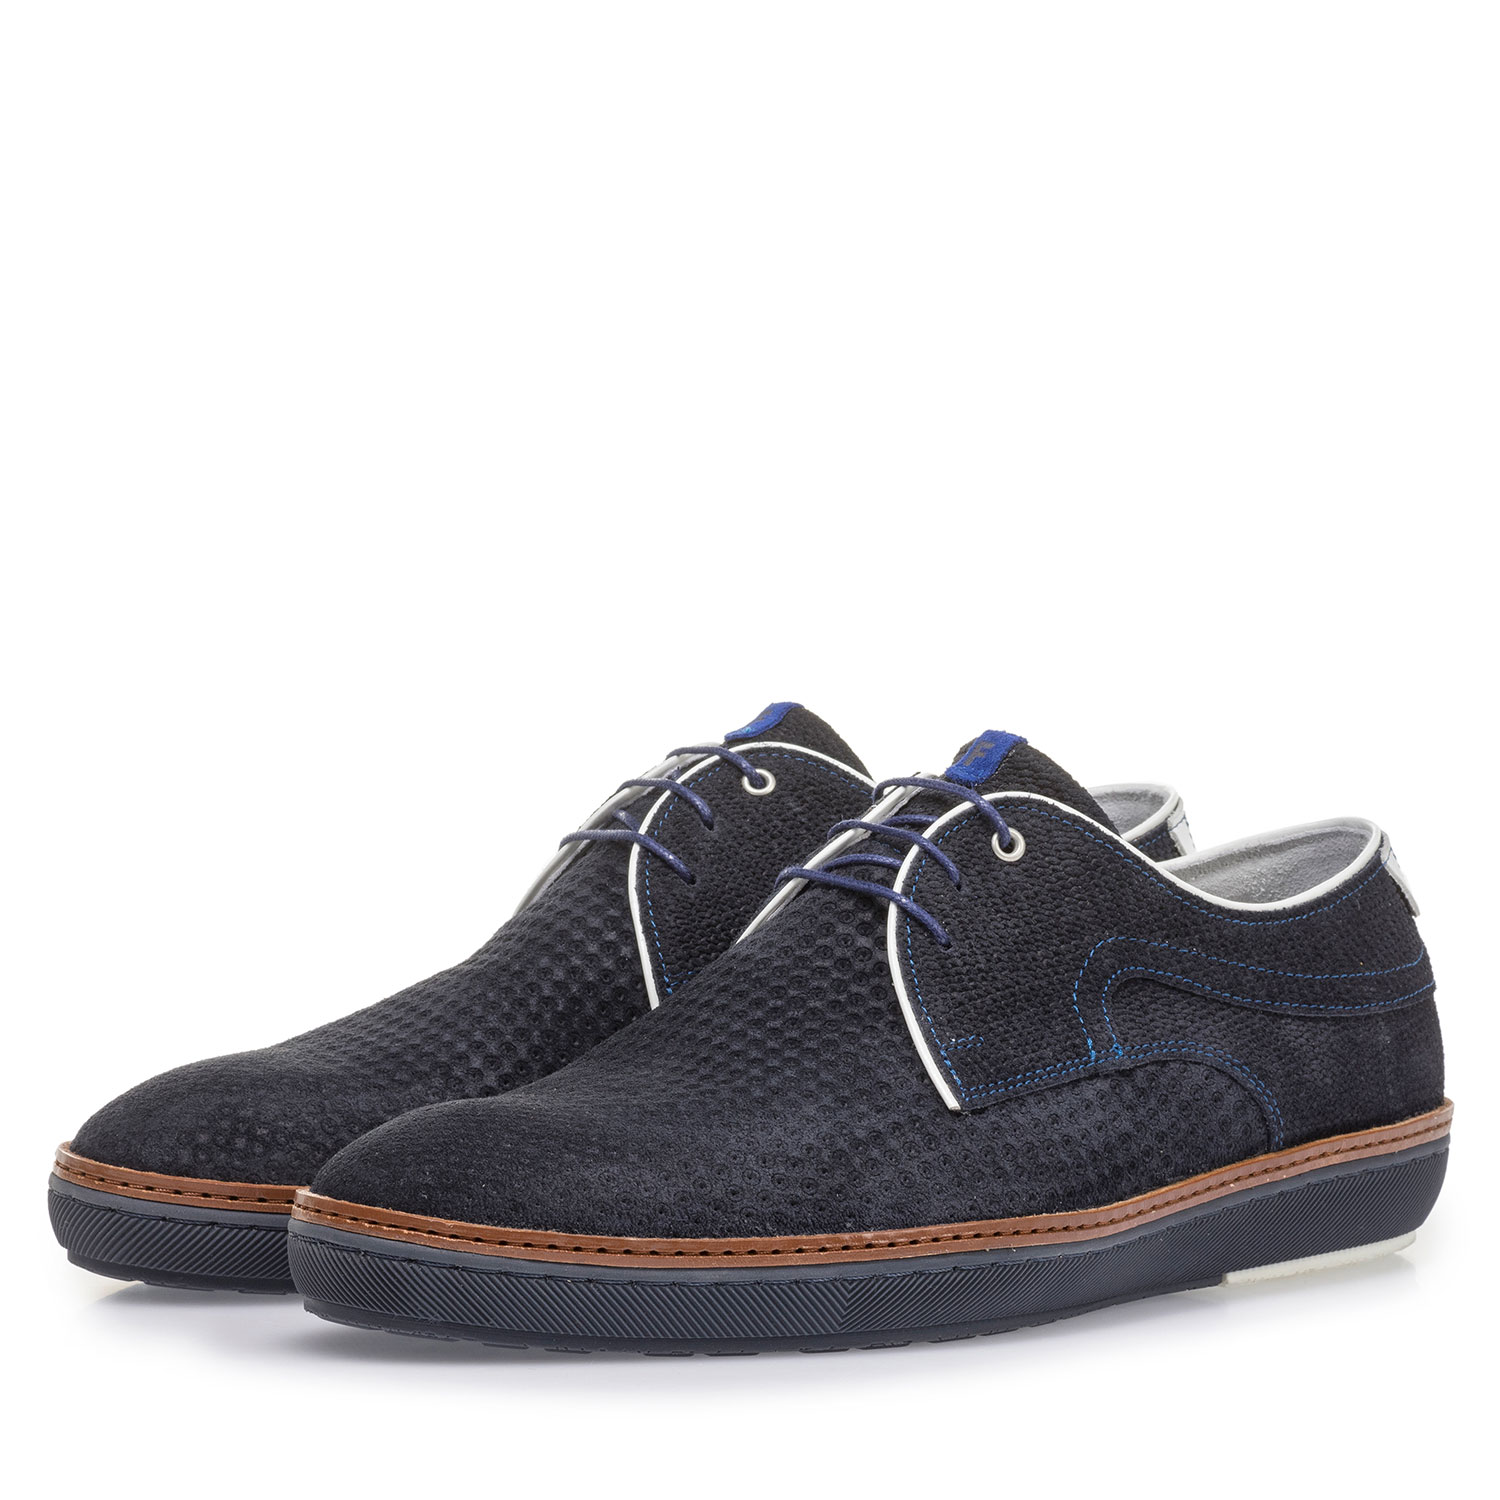 14020/36 - Blue suede leather lace shoe with print